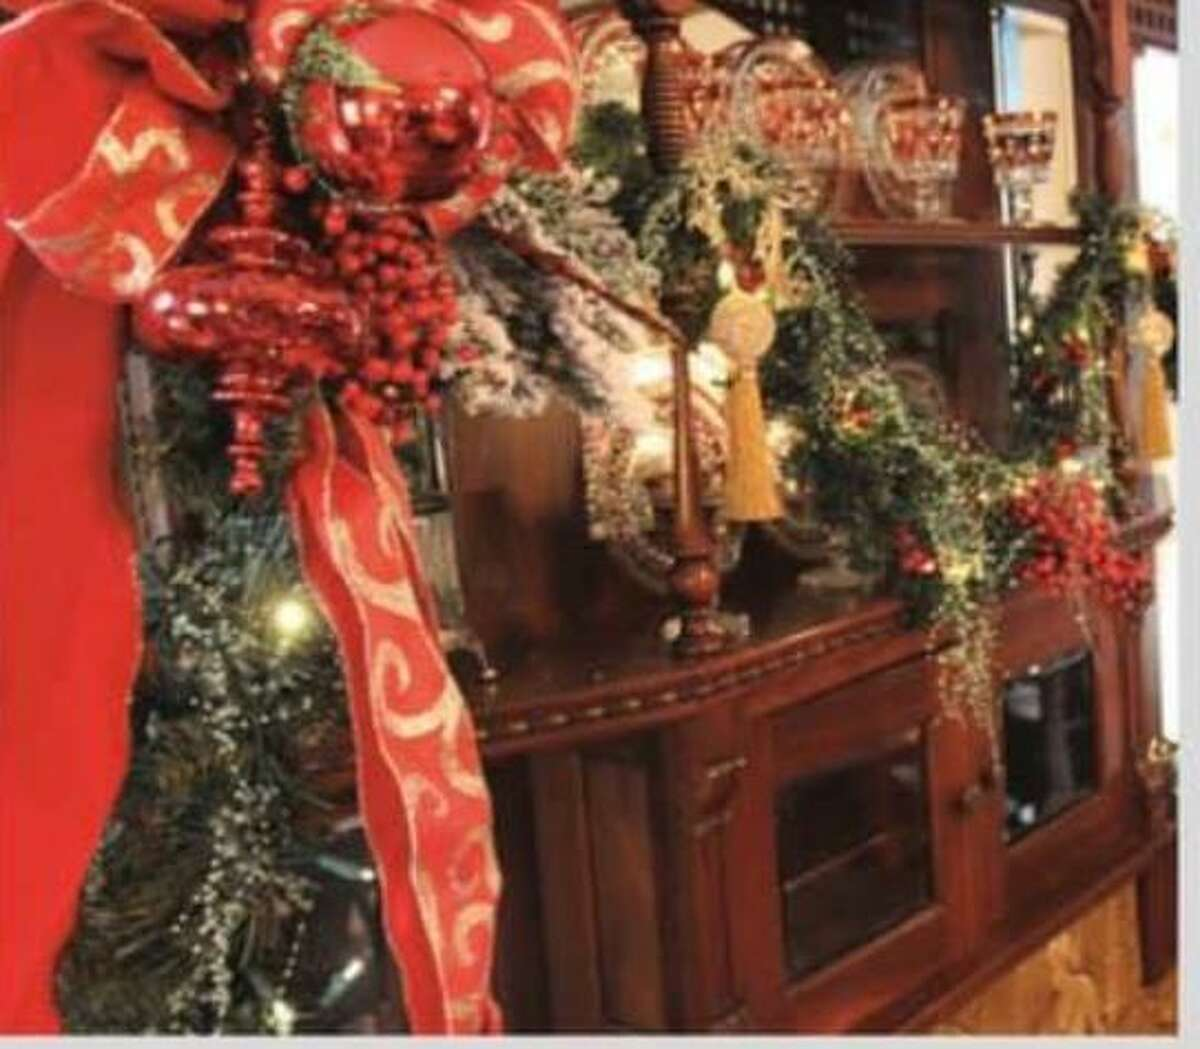 The Darien Historical Society is holding a holiday reception on Thursday, Dec. 5, from 6:30 to 8:30.